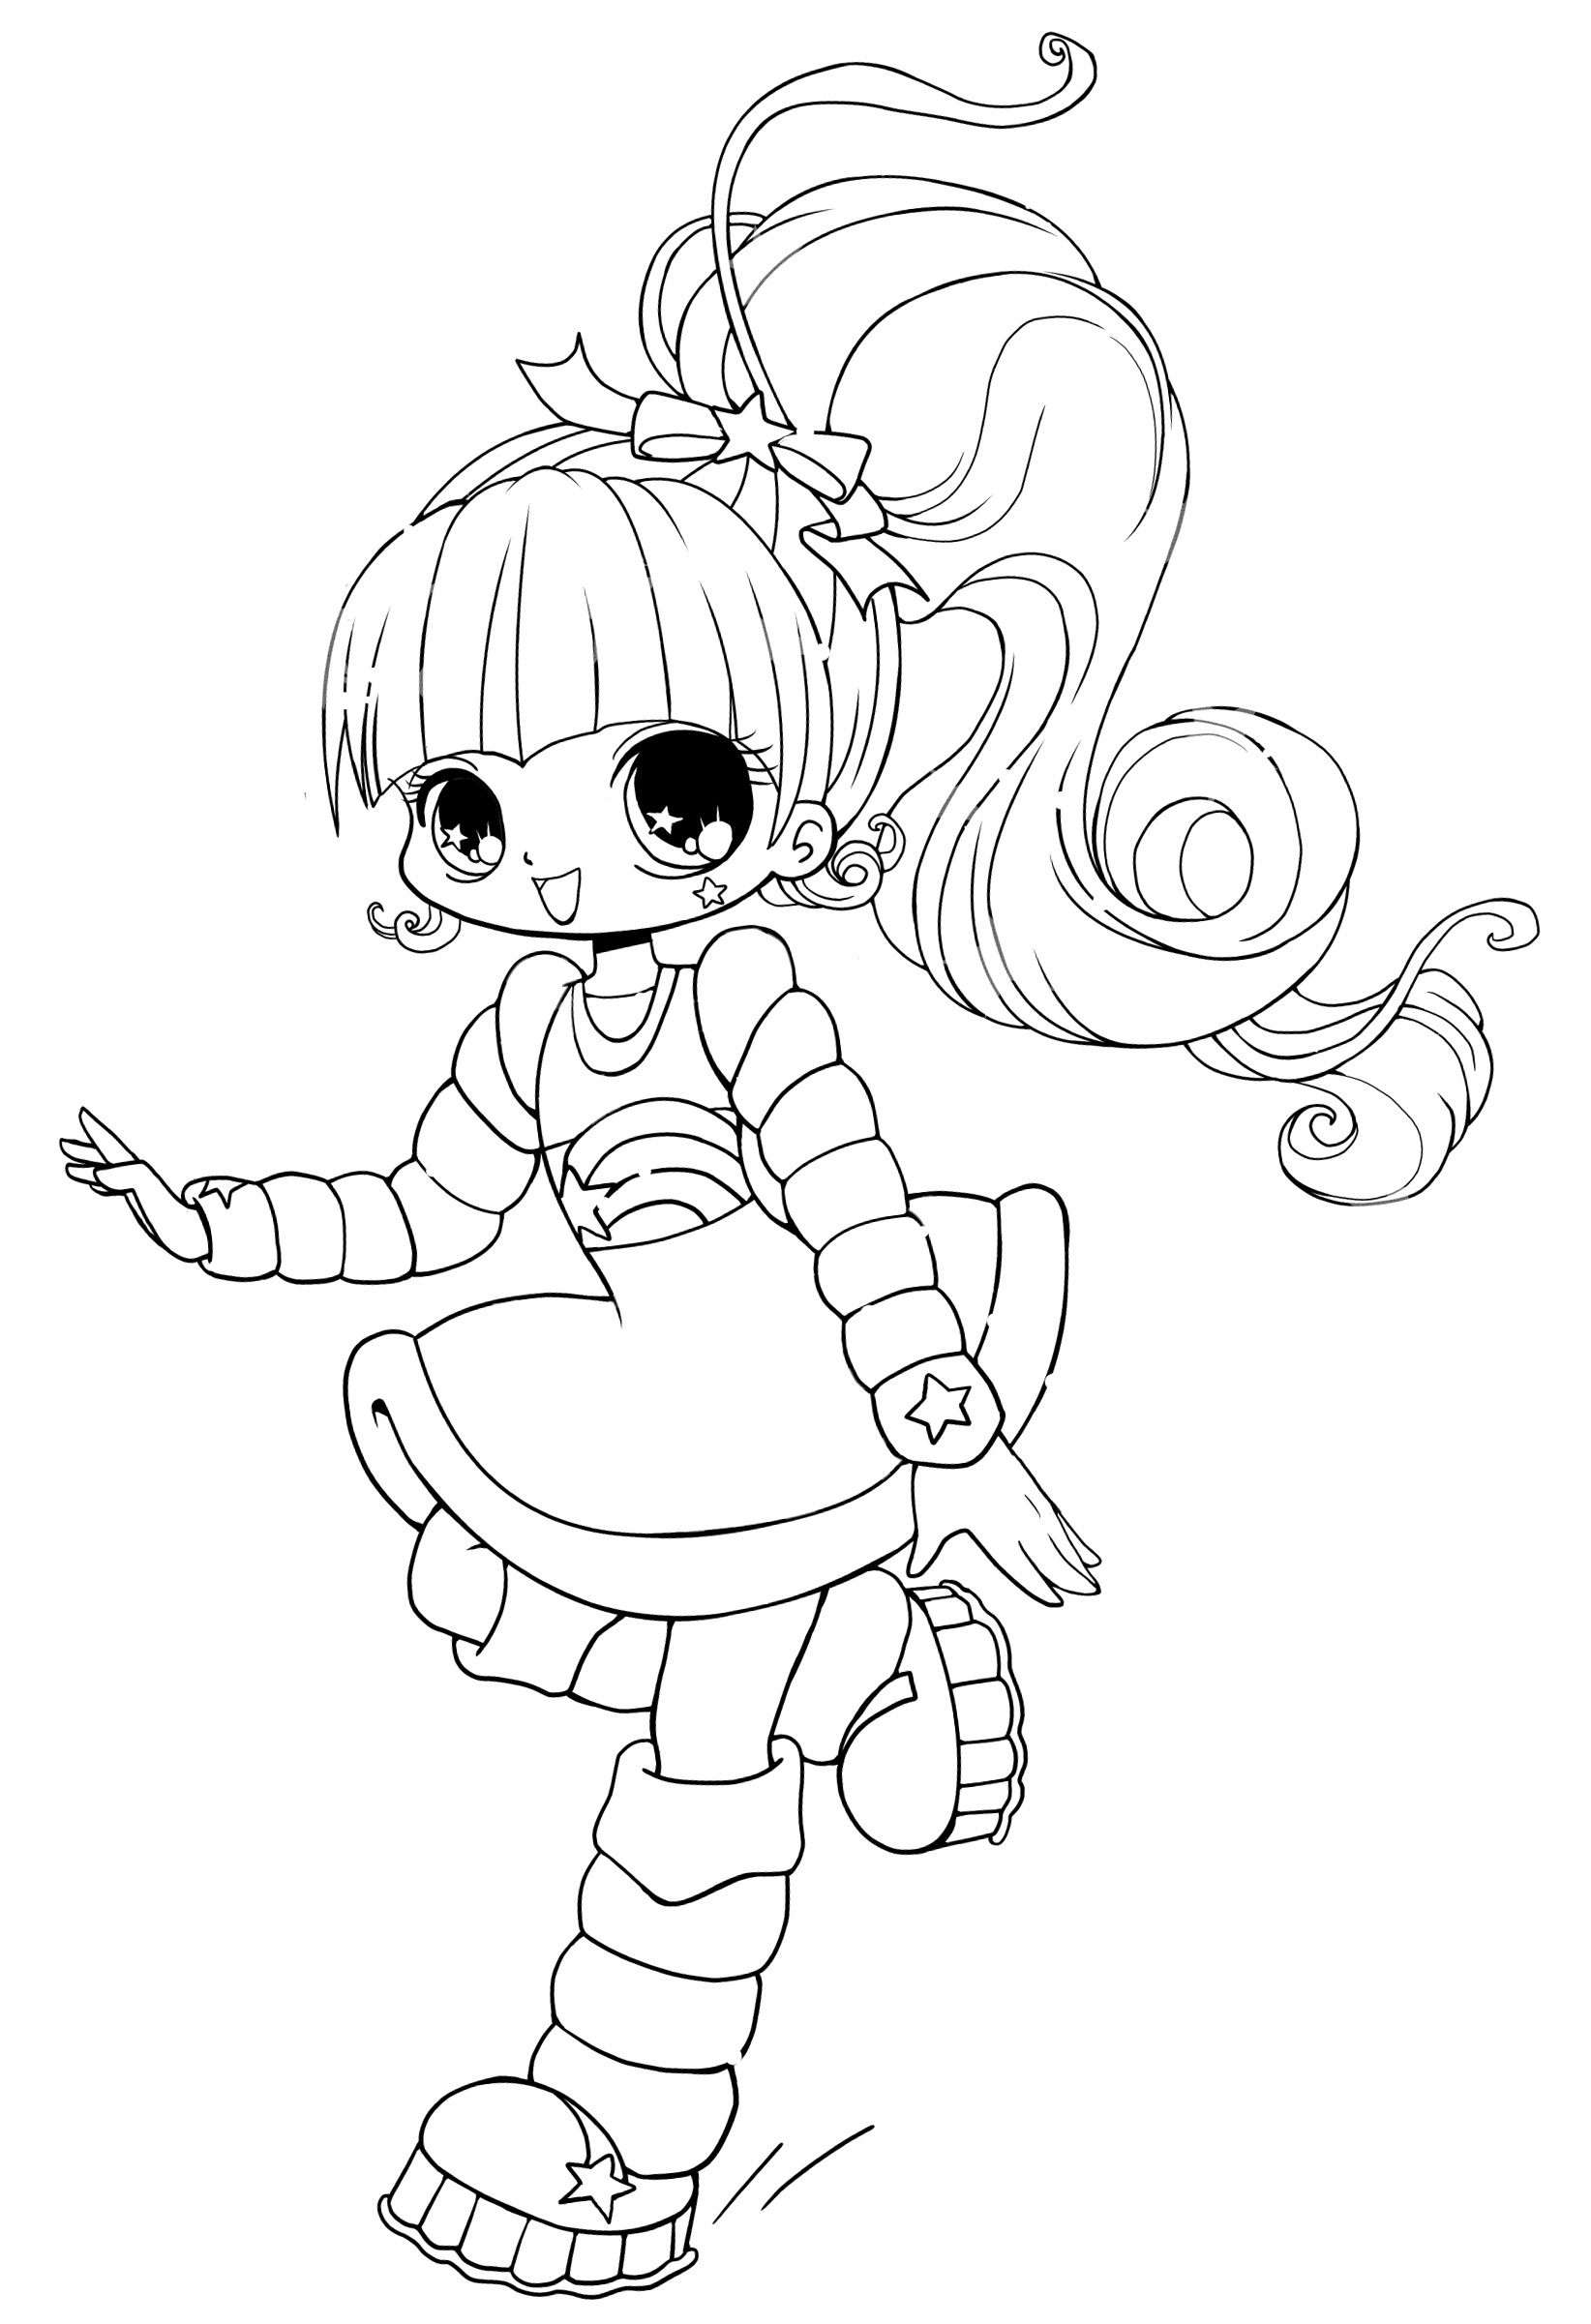 cute kawaii chibi coloring pages cute chibi coloring pages 675 kawaii chibi coloring pages cute